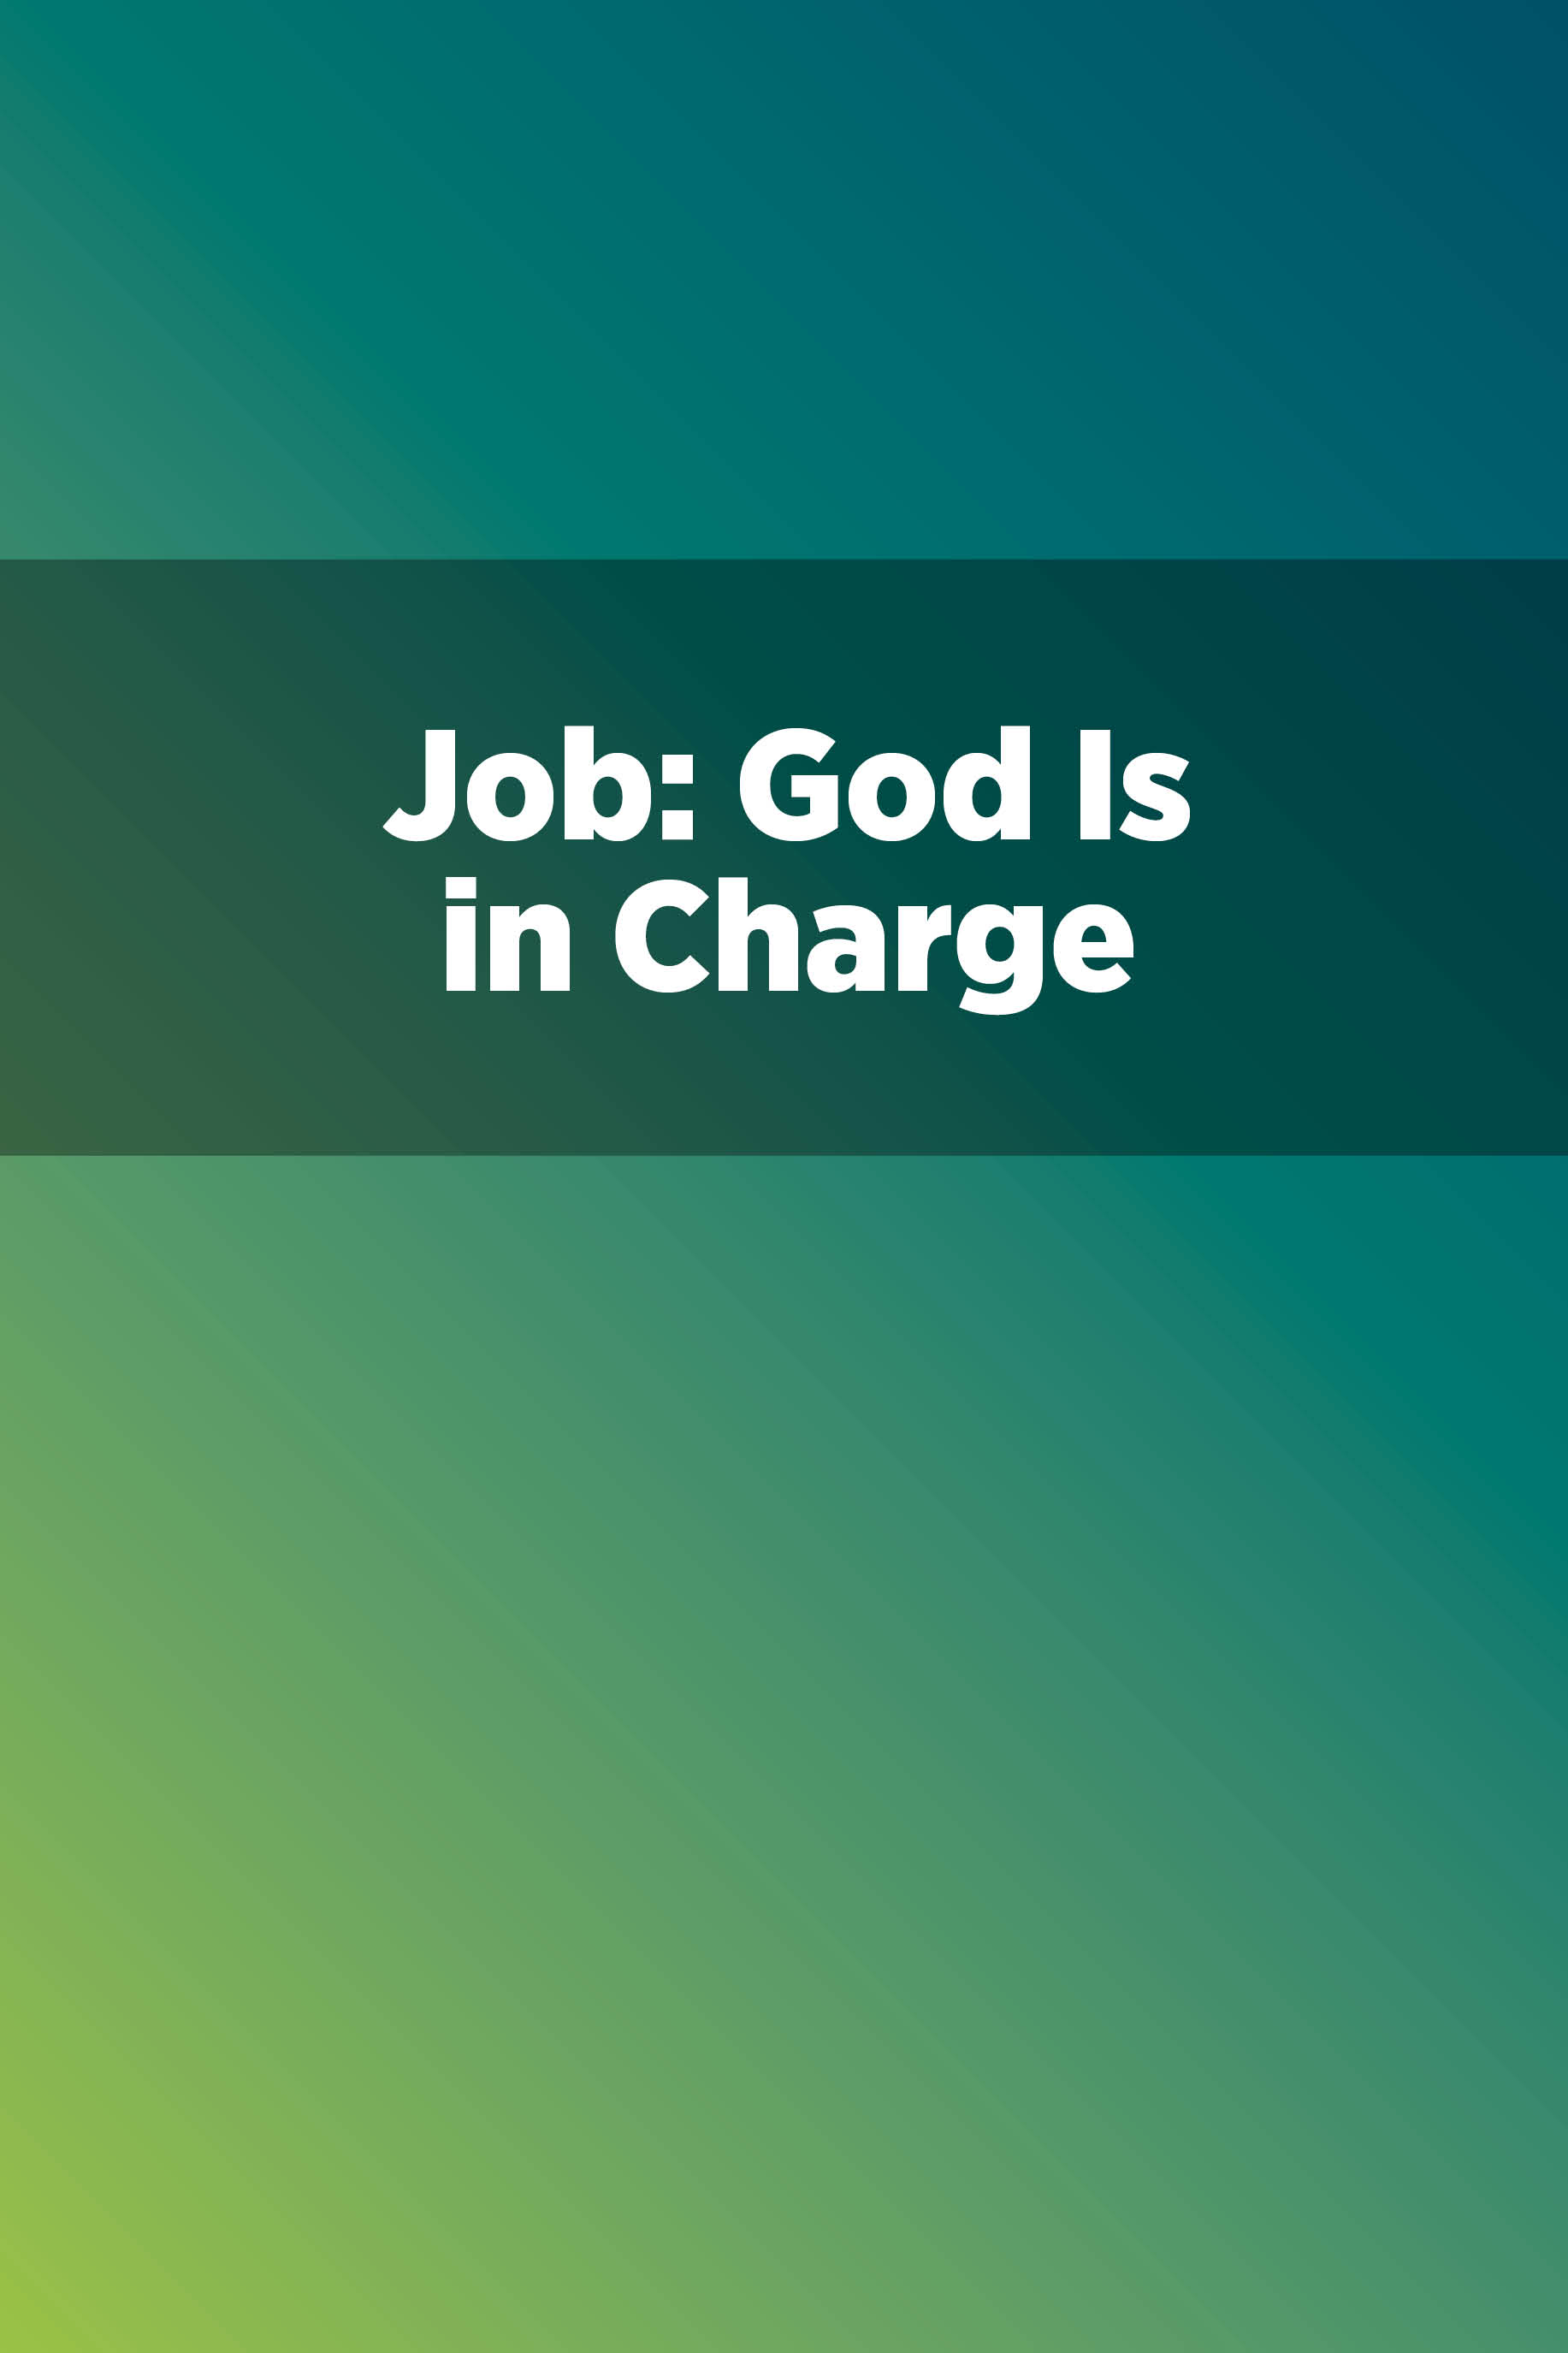 Job: God Is in Charge